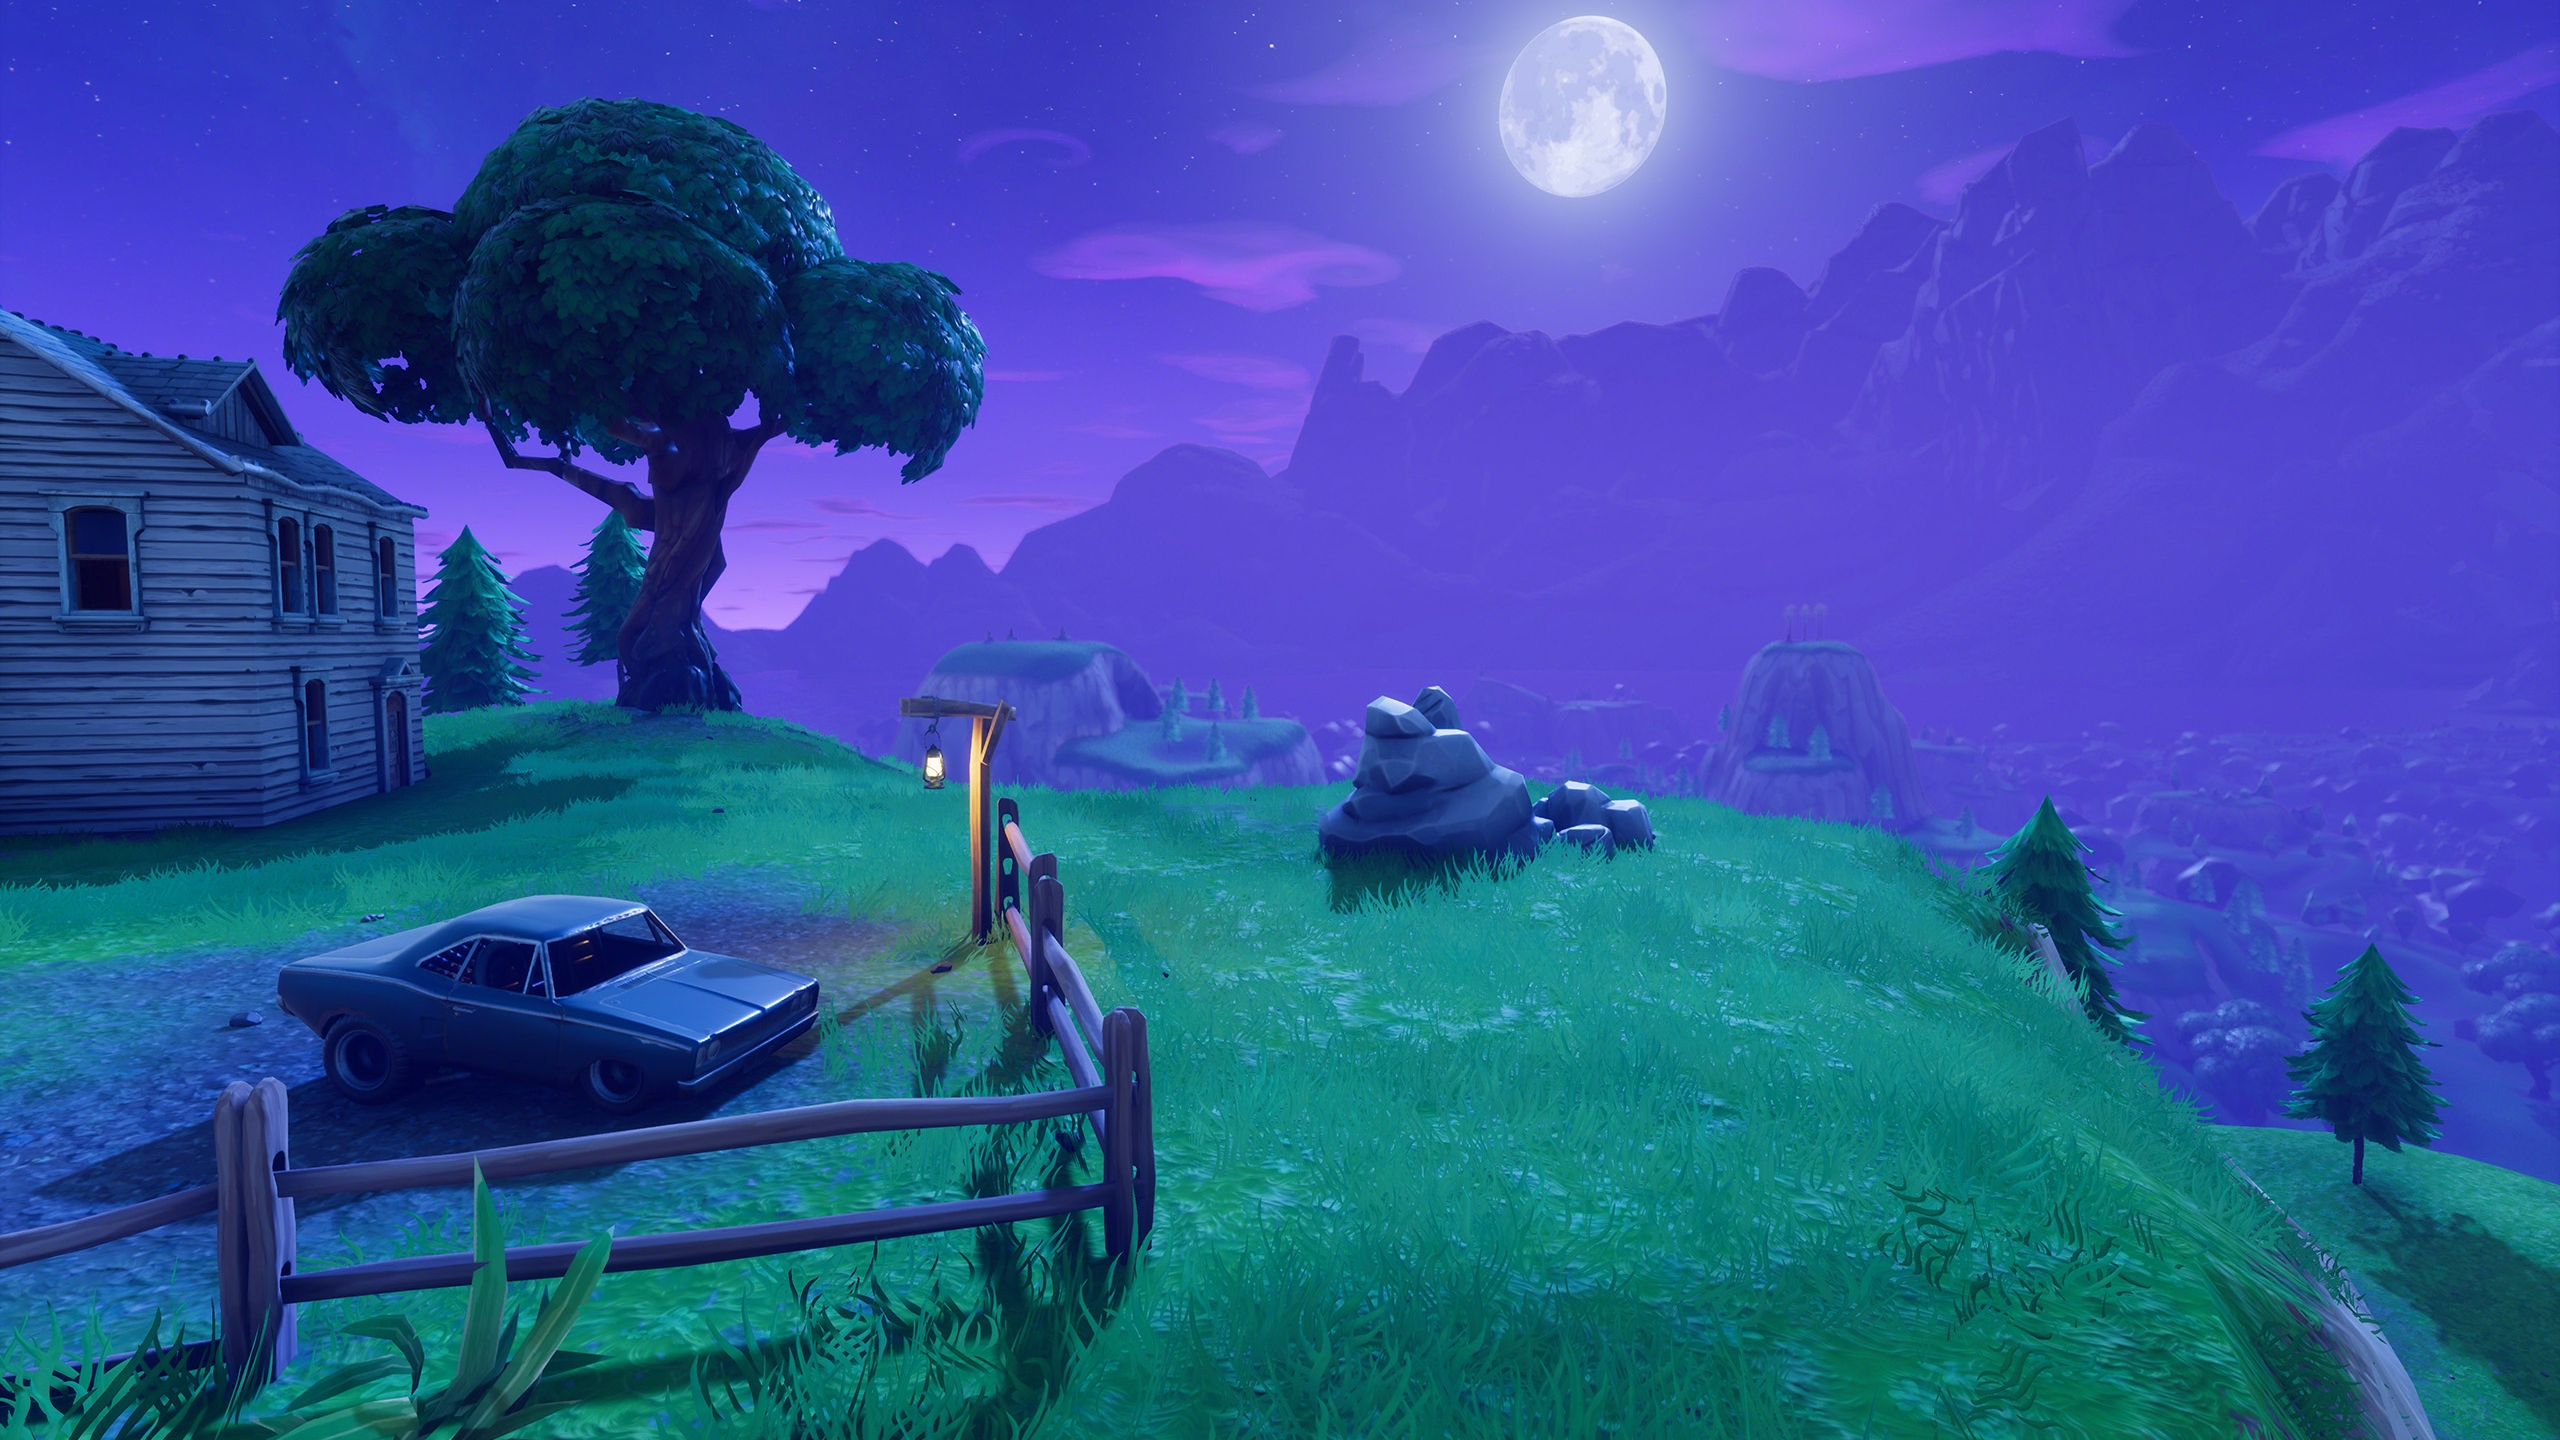 Fortnite [Video Game] Wallpaper HD 2560x1440